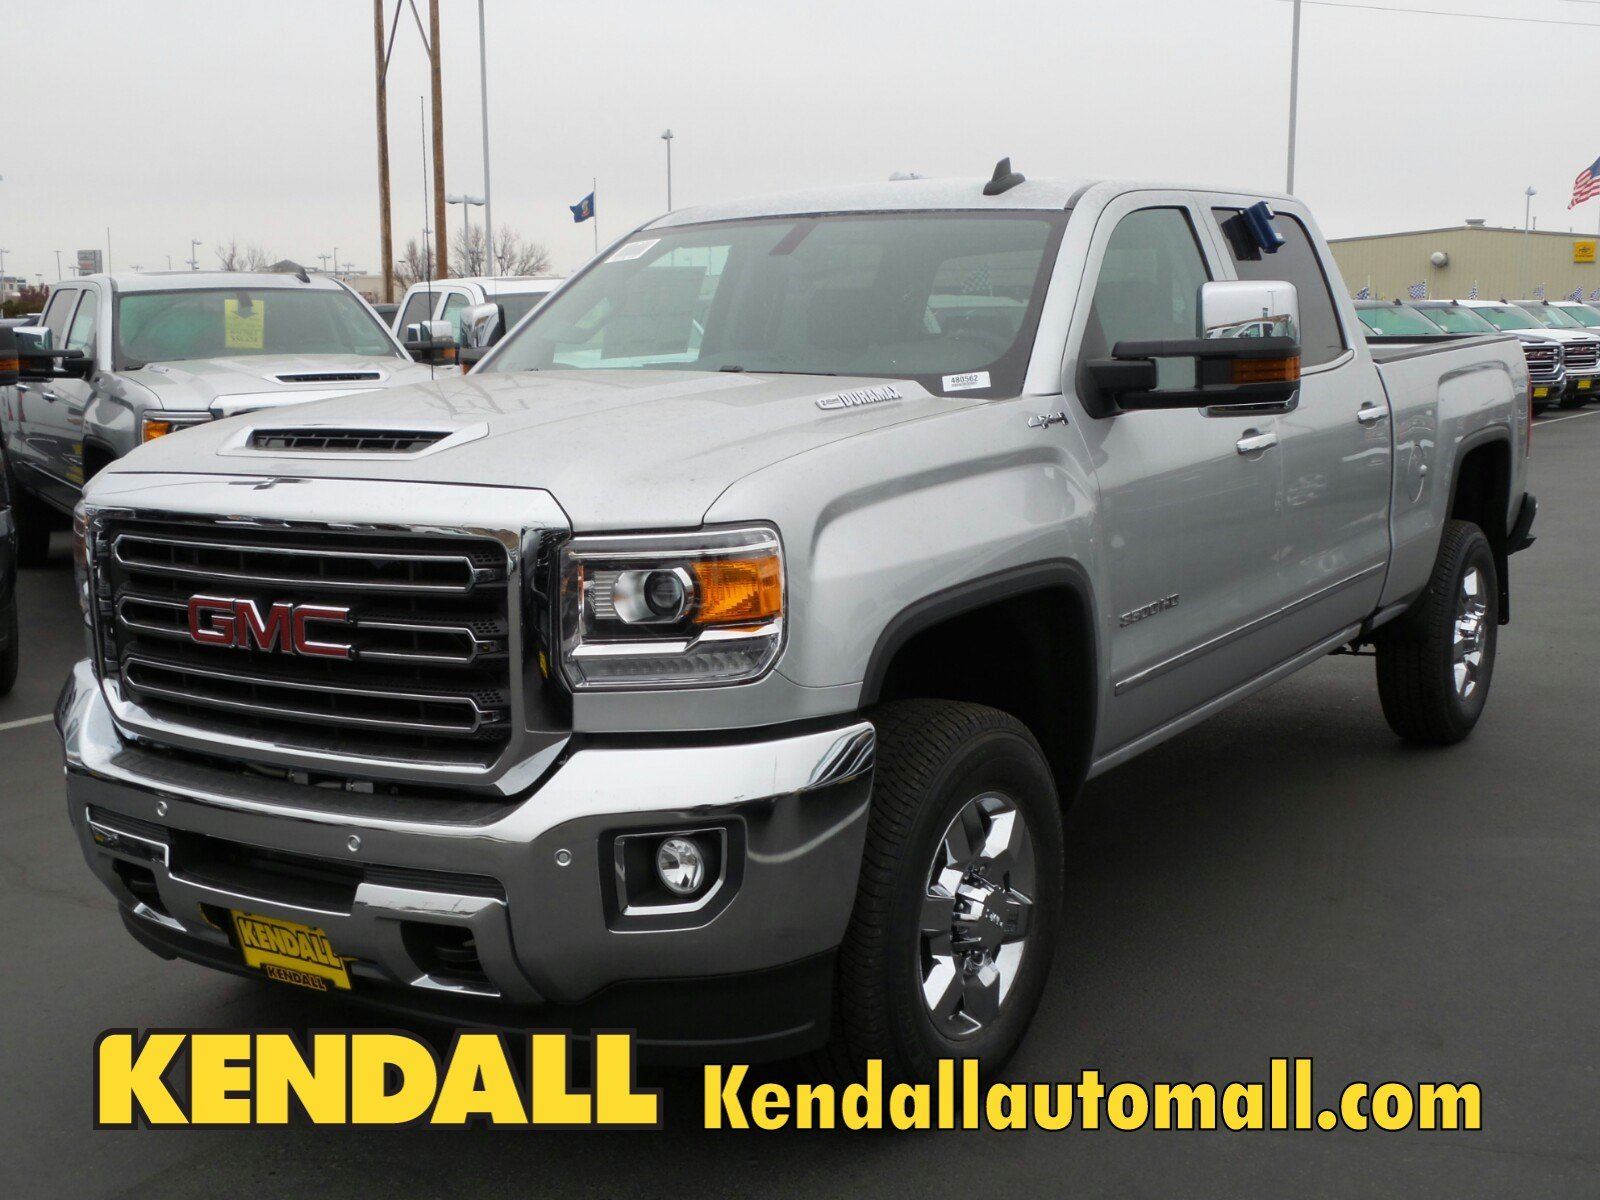 Denali Dually For Sale >> New 2018 GMC Sierra 3500HD SLT 4WD in Nampa #D480562 | Kendall at the Idaho Center Auto Mall